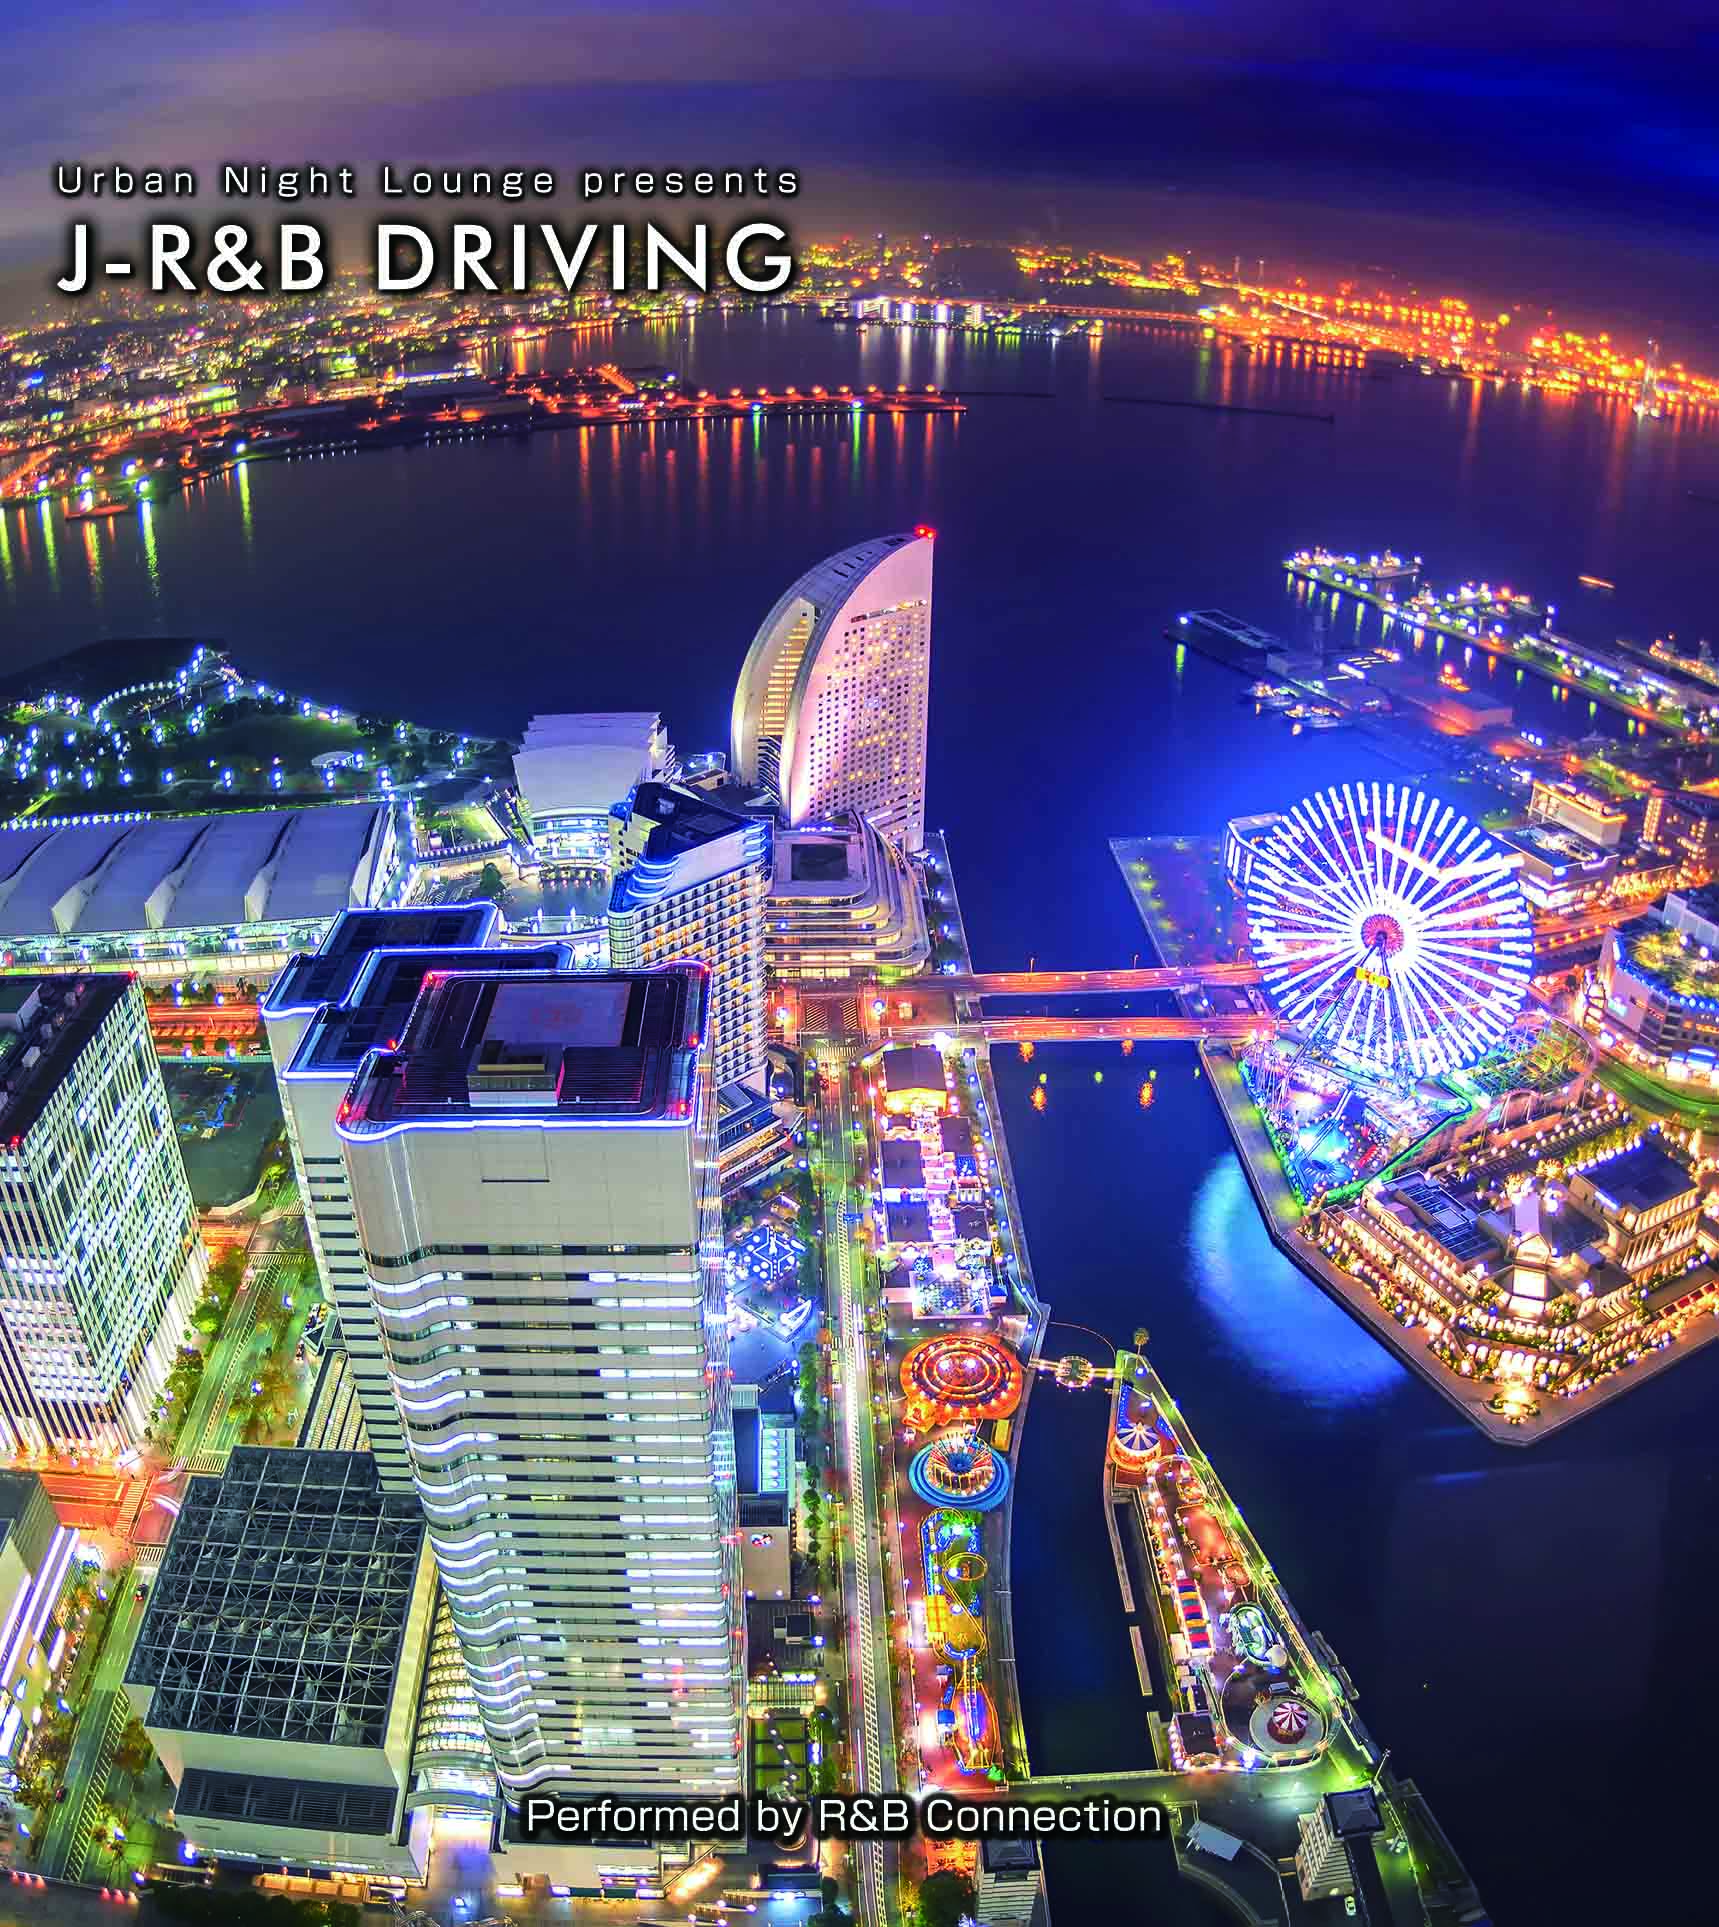 Urban Night Lounge presents J-R&B DRIVING